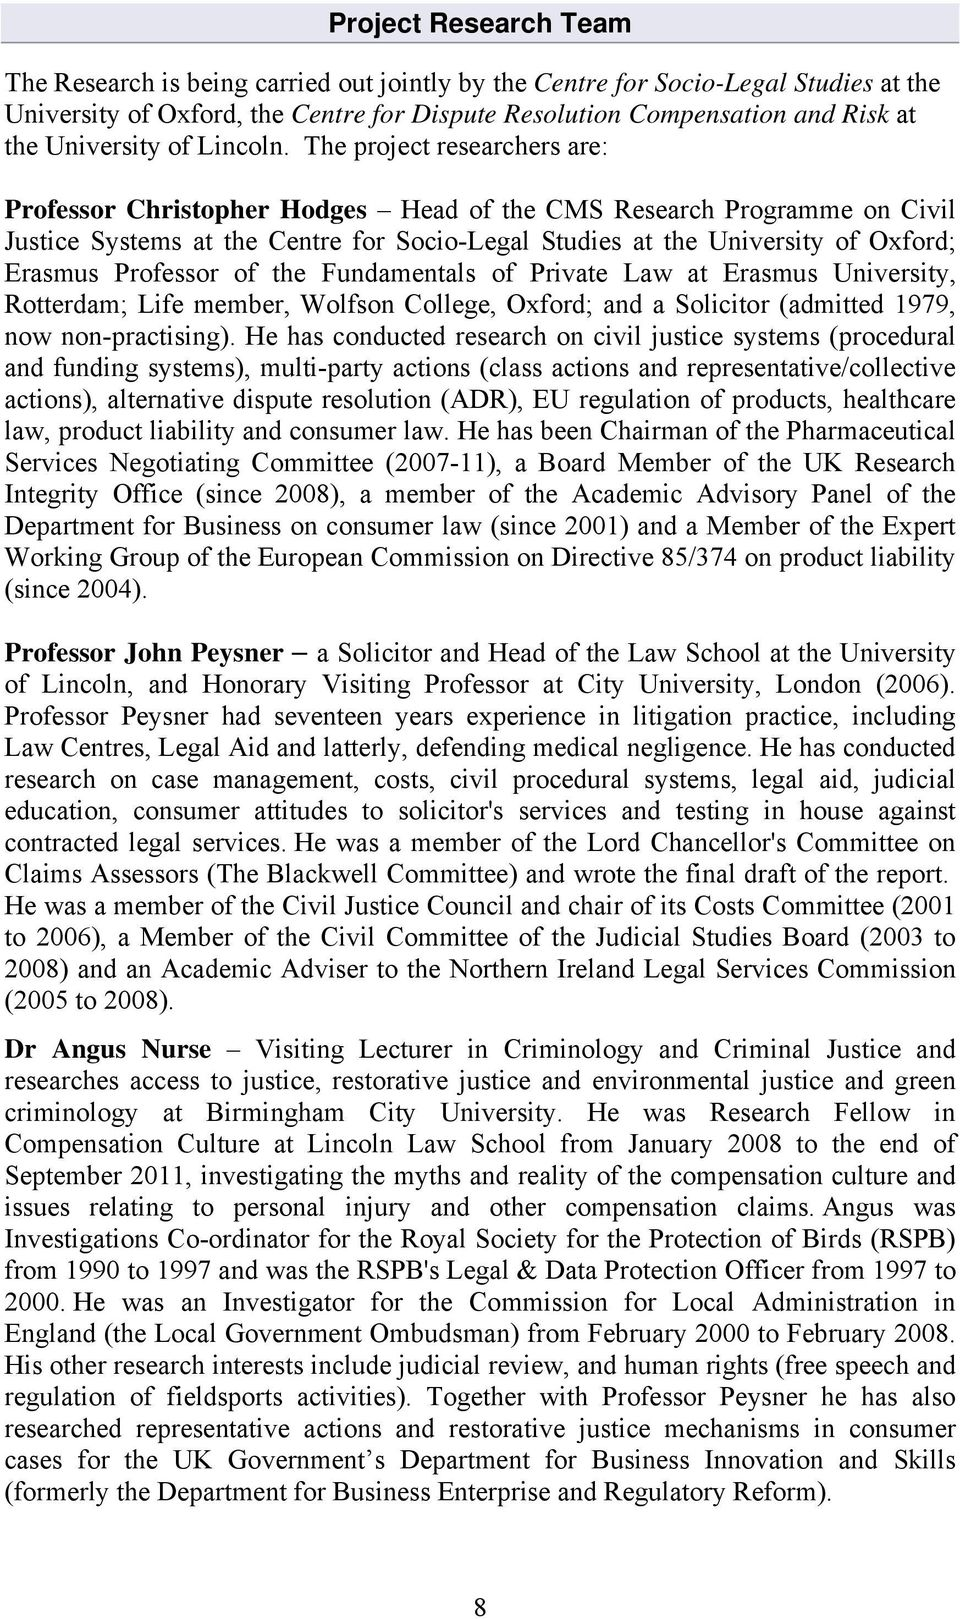 The project researchers are: Professor Christopher Hodges Head of the CMS Research Programme on Civil Justice Systems at the Centre for Socio-Legal Studies at the University of Oxford; Erasmus